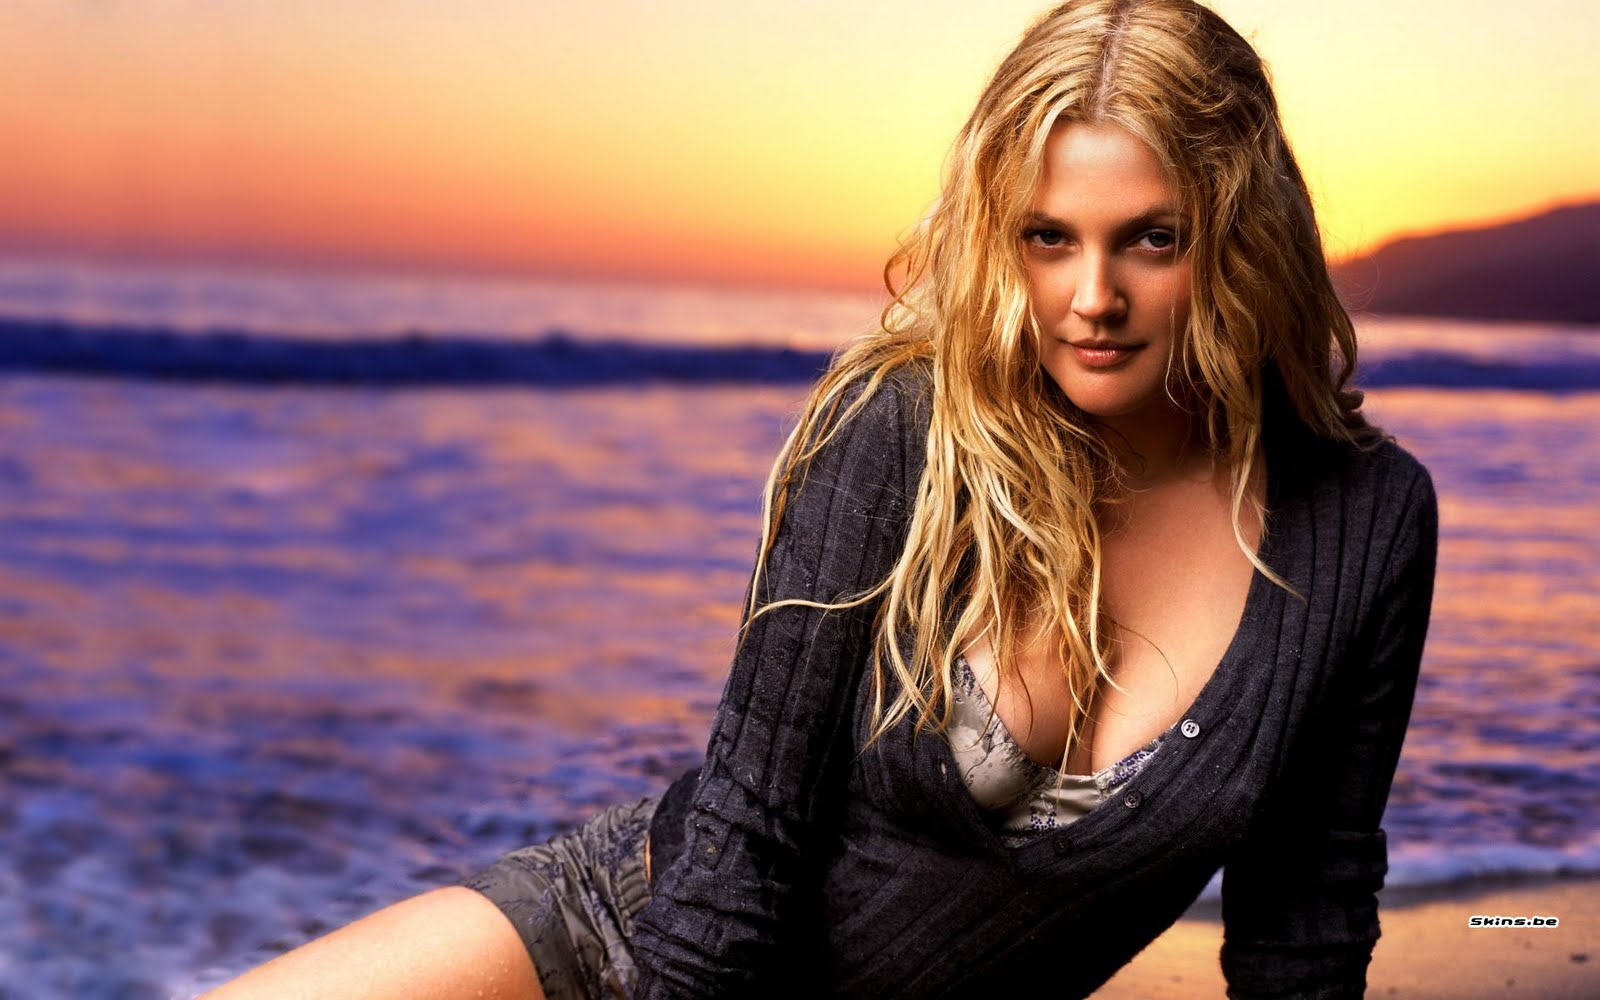 Drew Barrymore Wallpaper